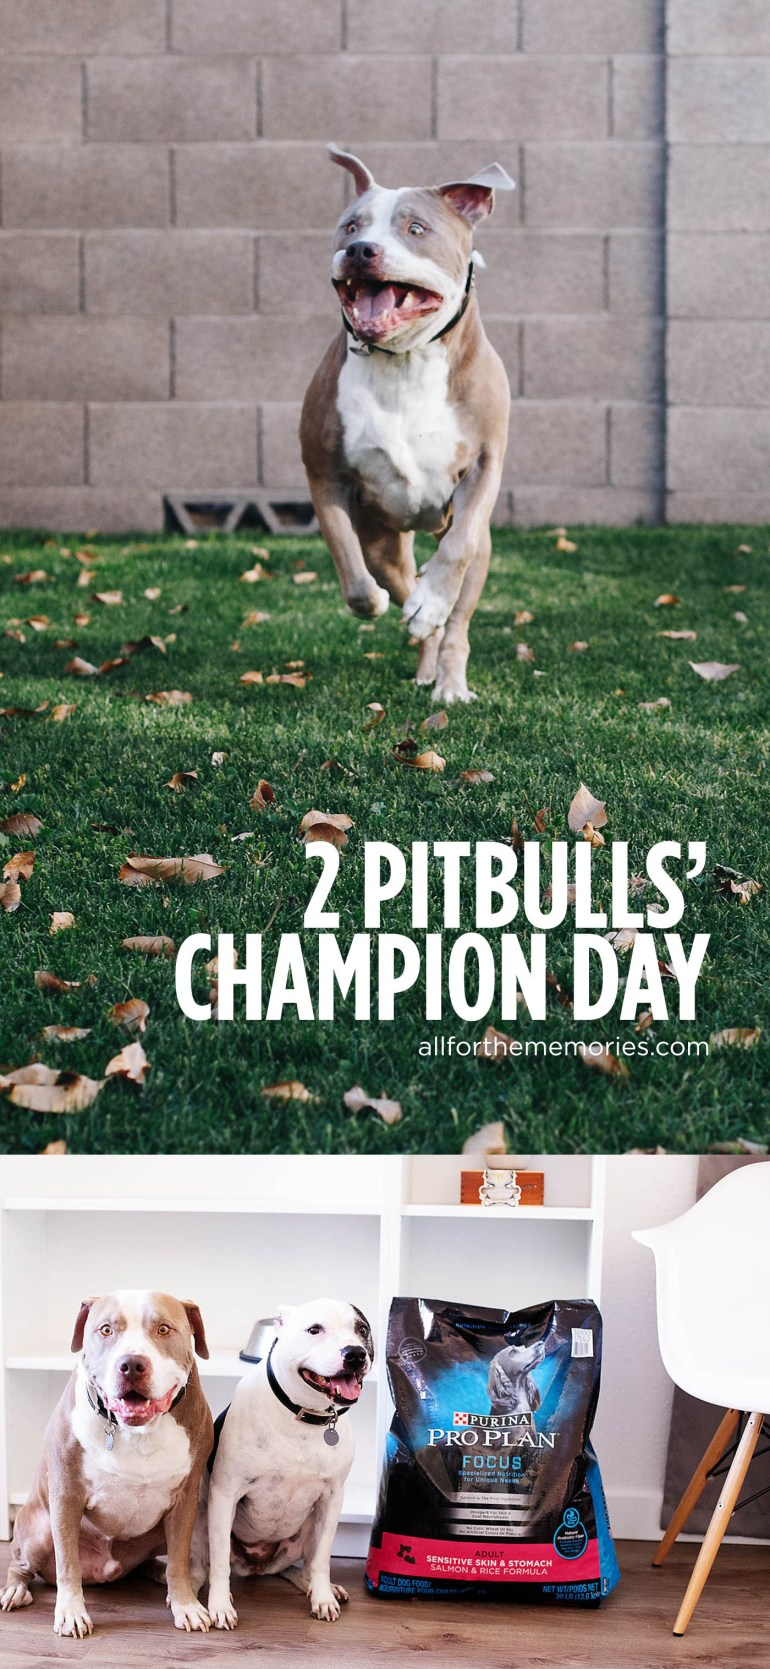 2 pitbulls' idea of a champion day